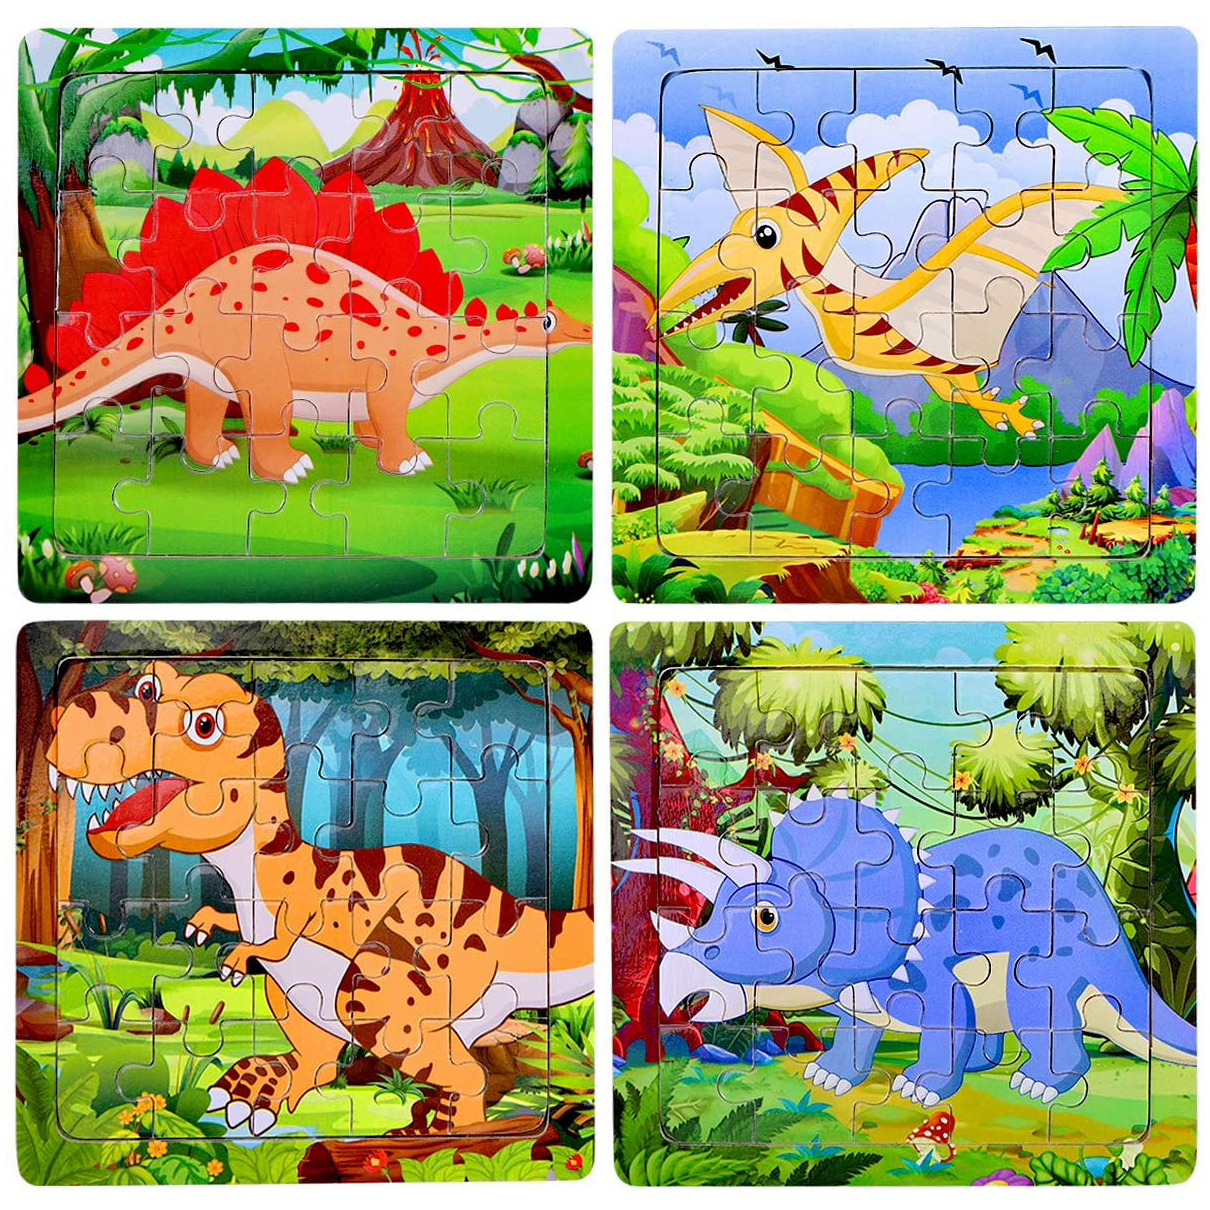 LOYALSE 2 Pack Wooden Puzzles 60 Pieces Puzzles for Kids 4-8 Years Old Dino Toys Surprise Easter Dino Egg Puzzles Jigsaw Puzzle Boys Girls Gift Kids Dinosaur Puzzle with Easter Egg